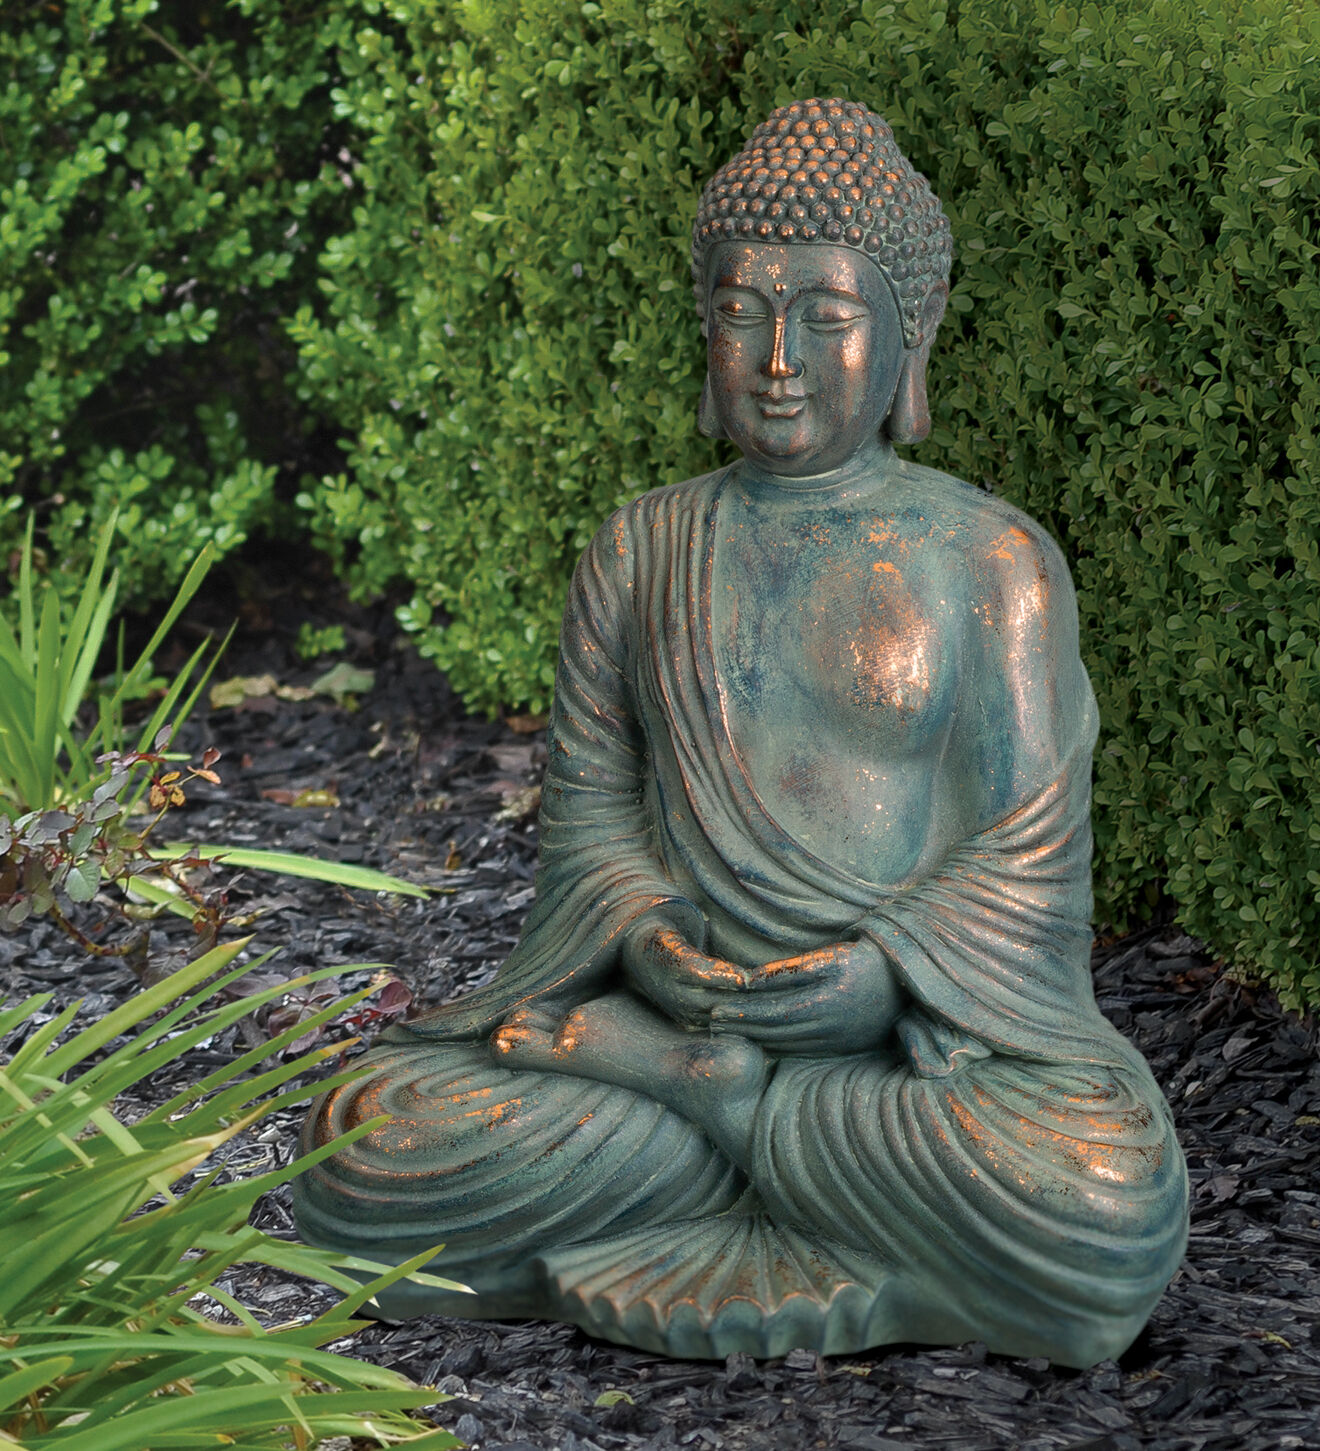 Charmant ... BUDDHA STATUE 16u0027u0027 COPPER PATINA GARDEN STATUARY Regal Art U0026 Gift 11482  2 Of 12 BUDDHA STATUE ...